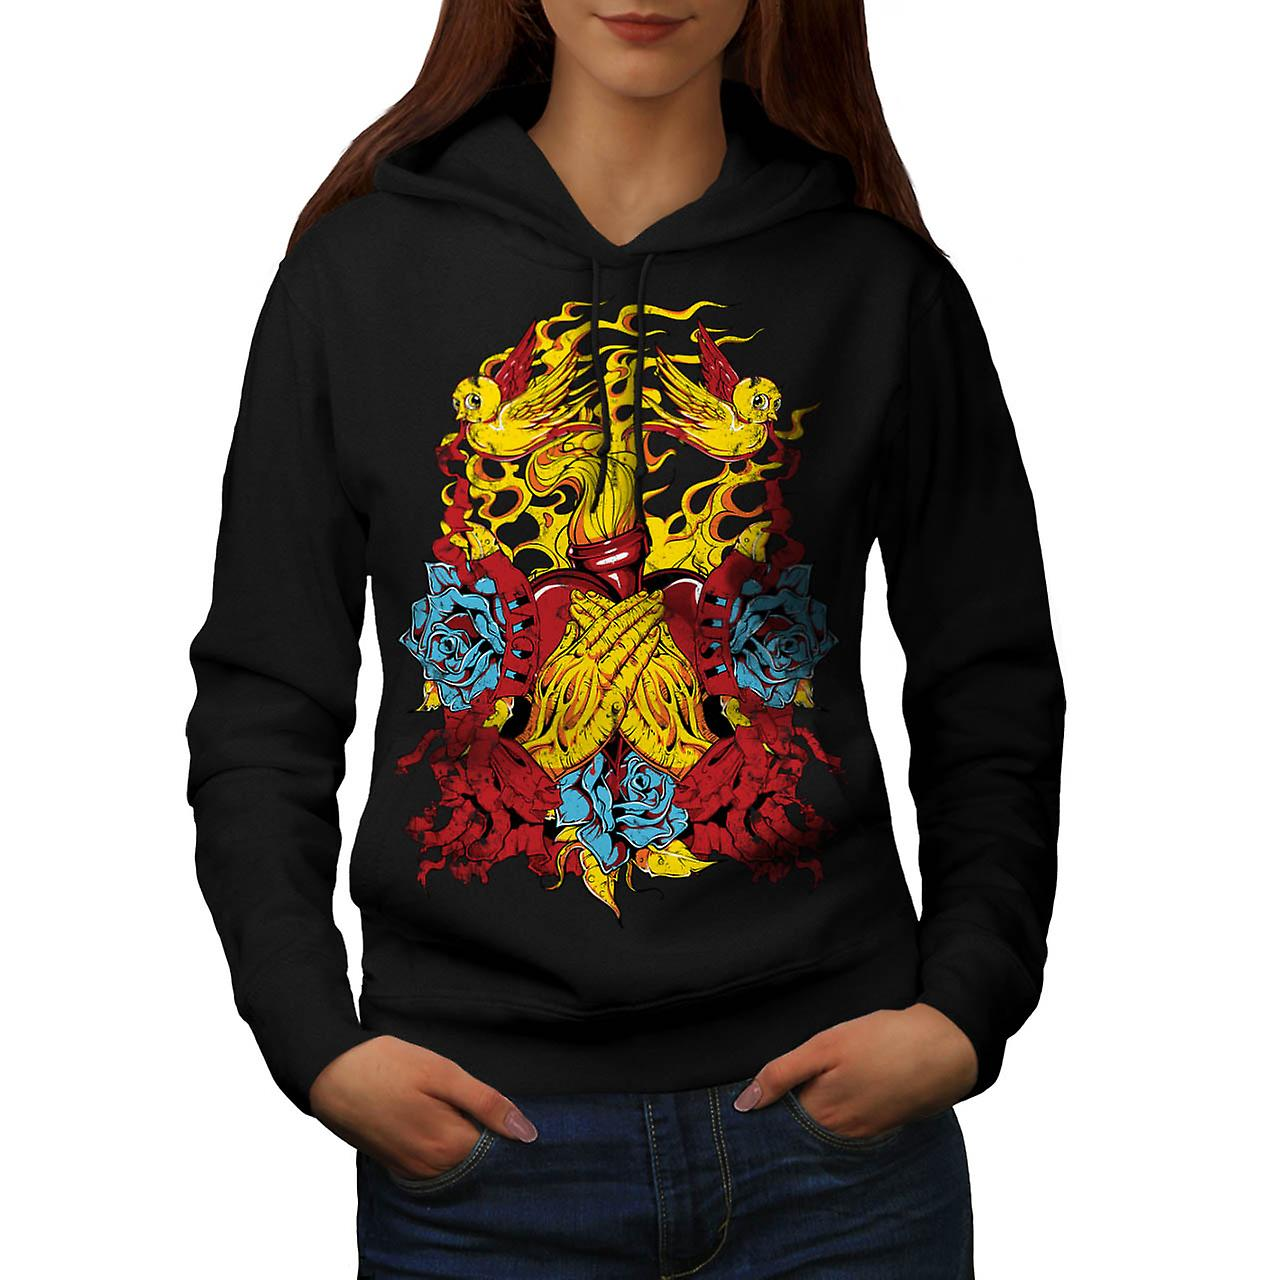 Heart Beats Prayer Love Fire USA Women Black Hoodie | Wellcoda